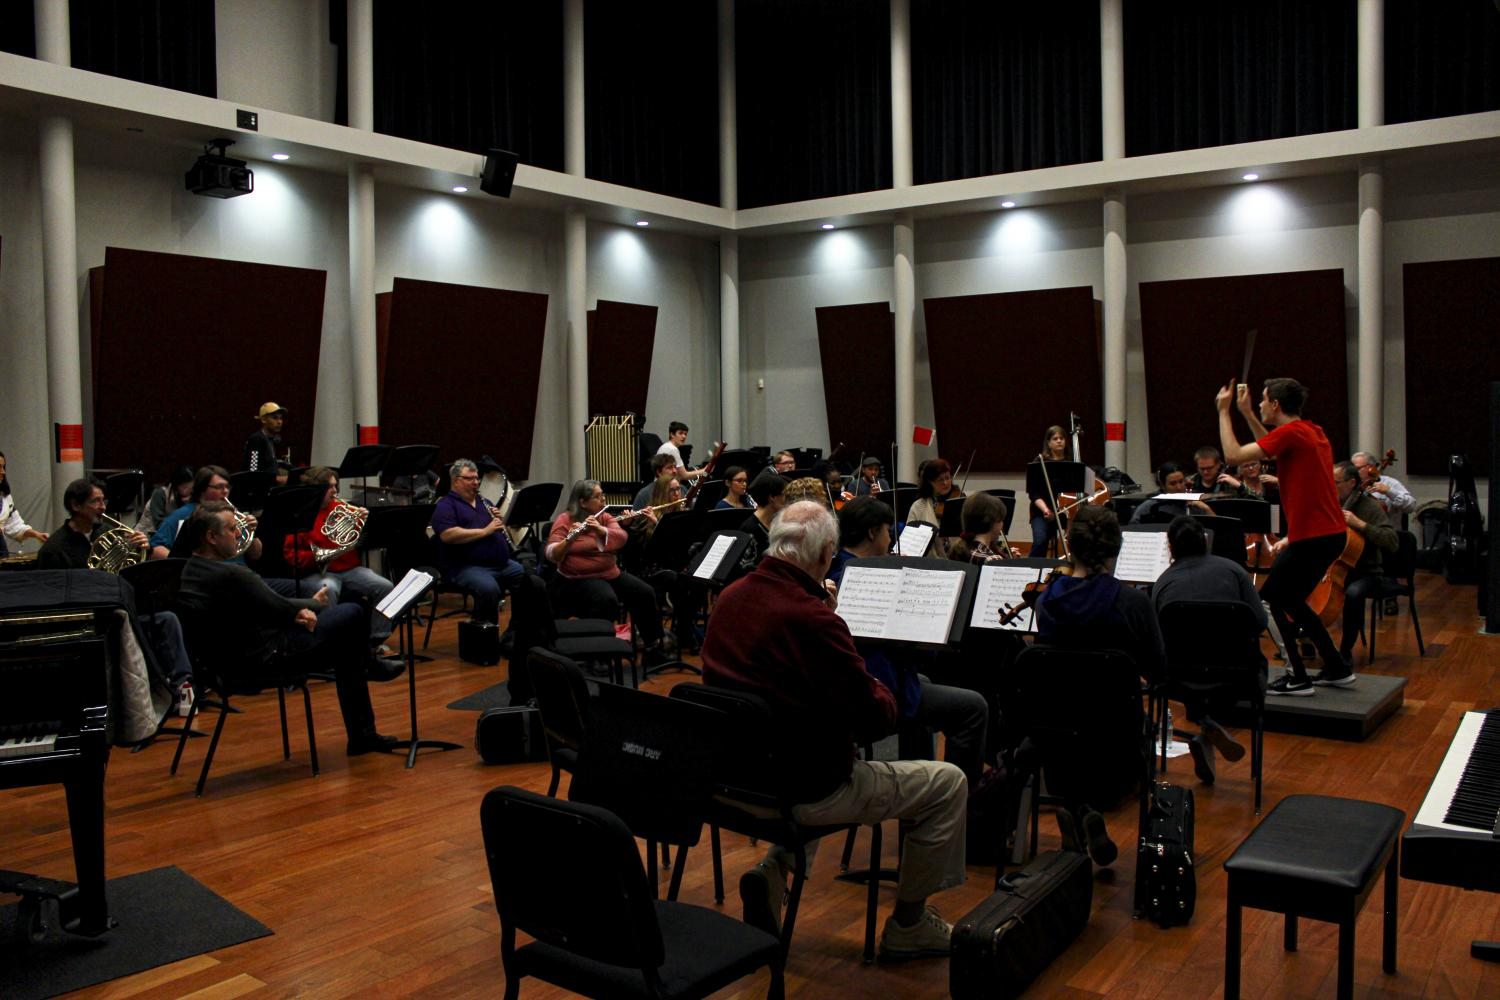 Composer Colin Regan conducts the orchestra practice for the Aria Concert, in the band room at American River College Main Theatre, every Wednesday at 7 p.m - 9:30 p.m. (Photo by Bram Martinez).